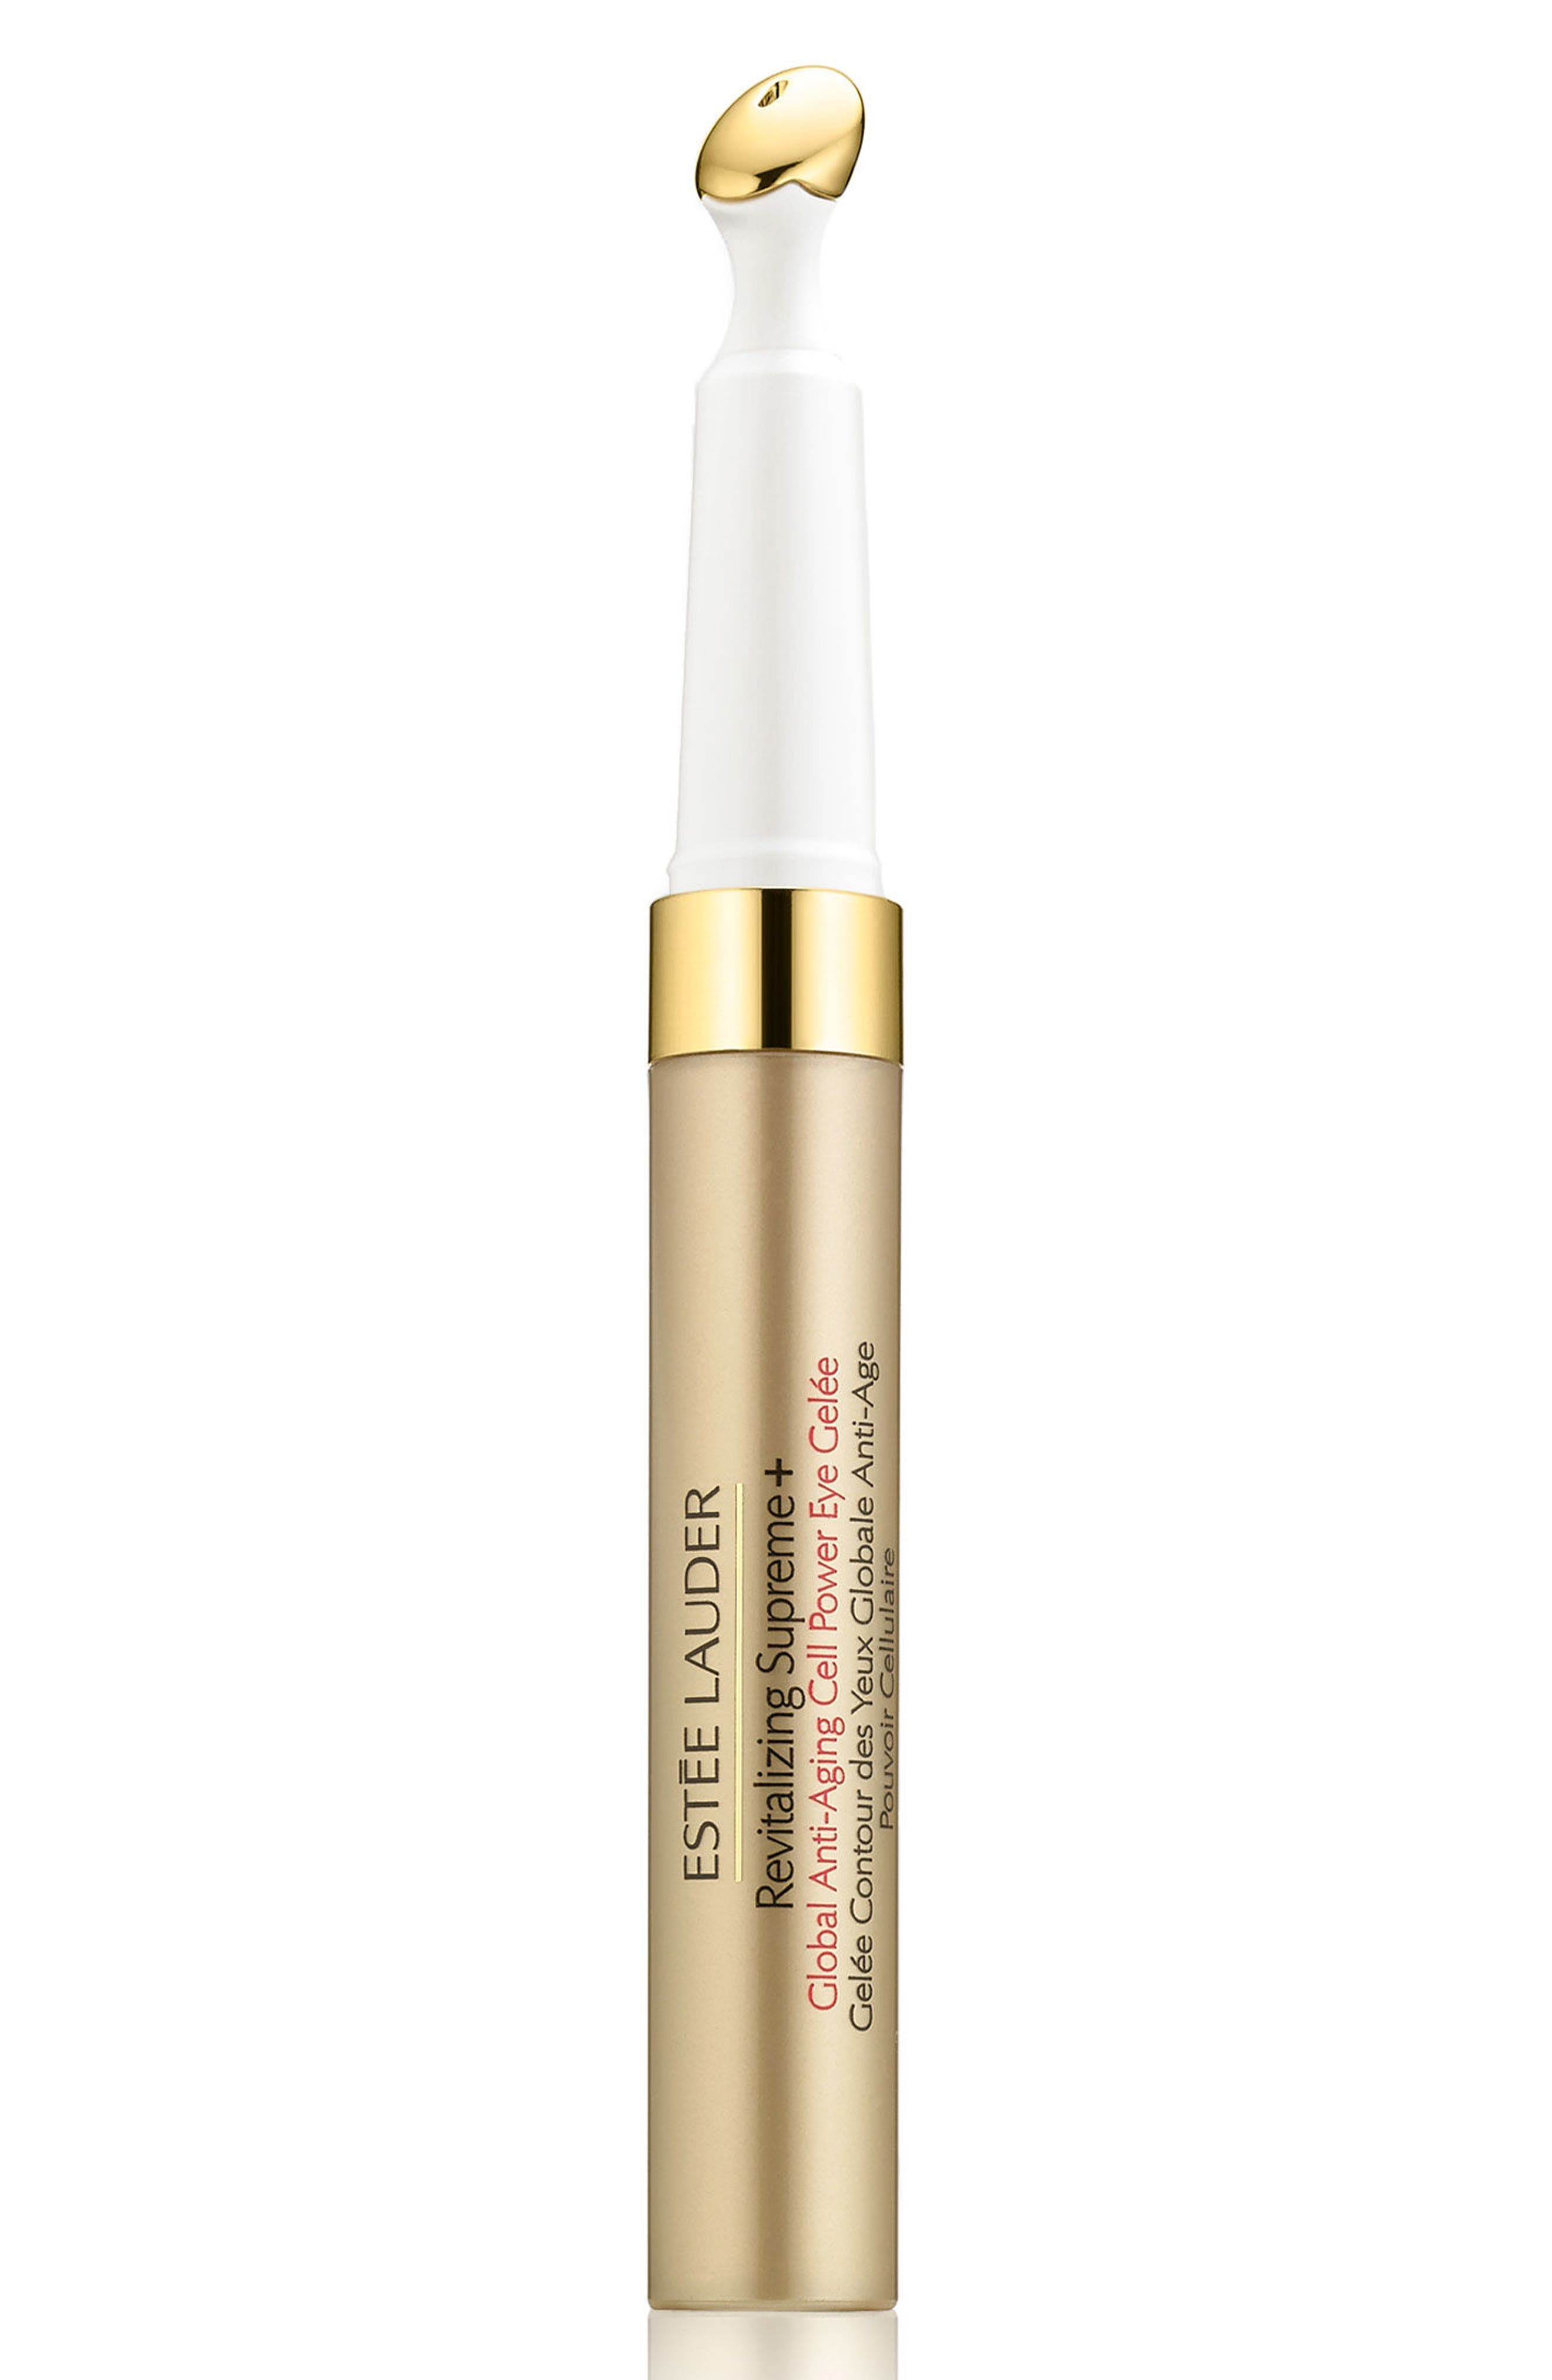 Revitalizing Supreme+ Global Anti-Aging Cell Power Eye Gelée,                             Main thumbnail 1, color,                             No Color